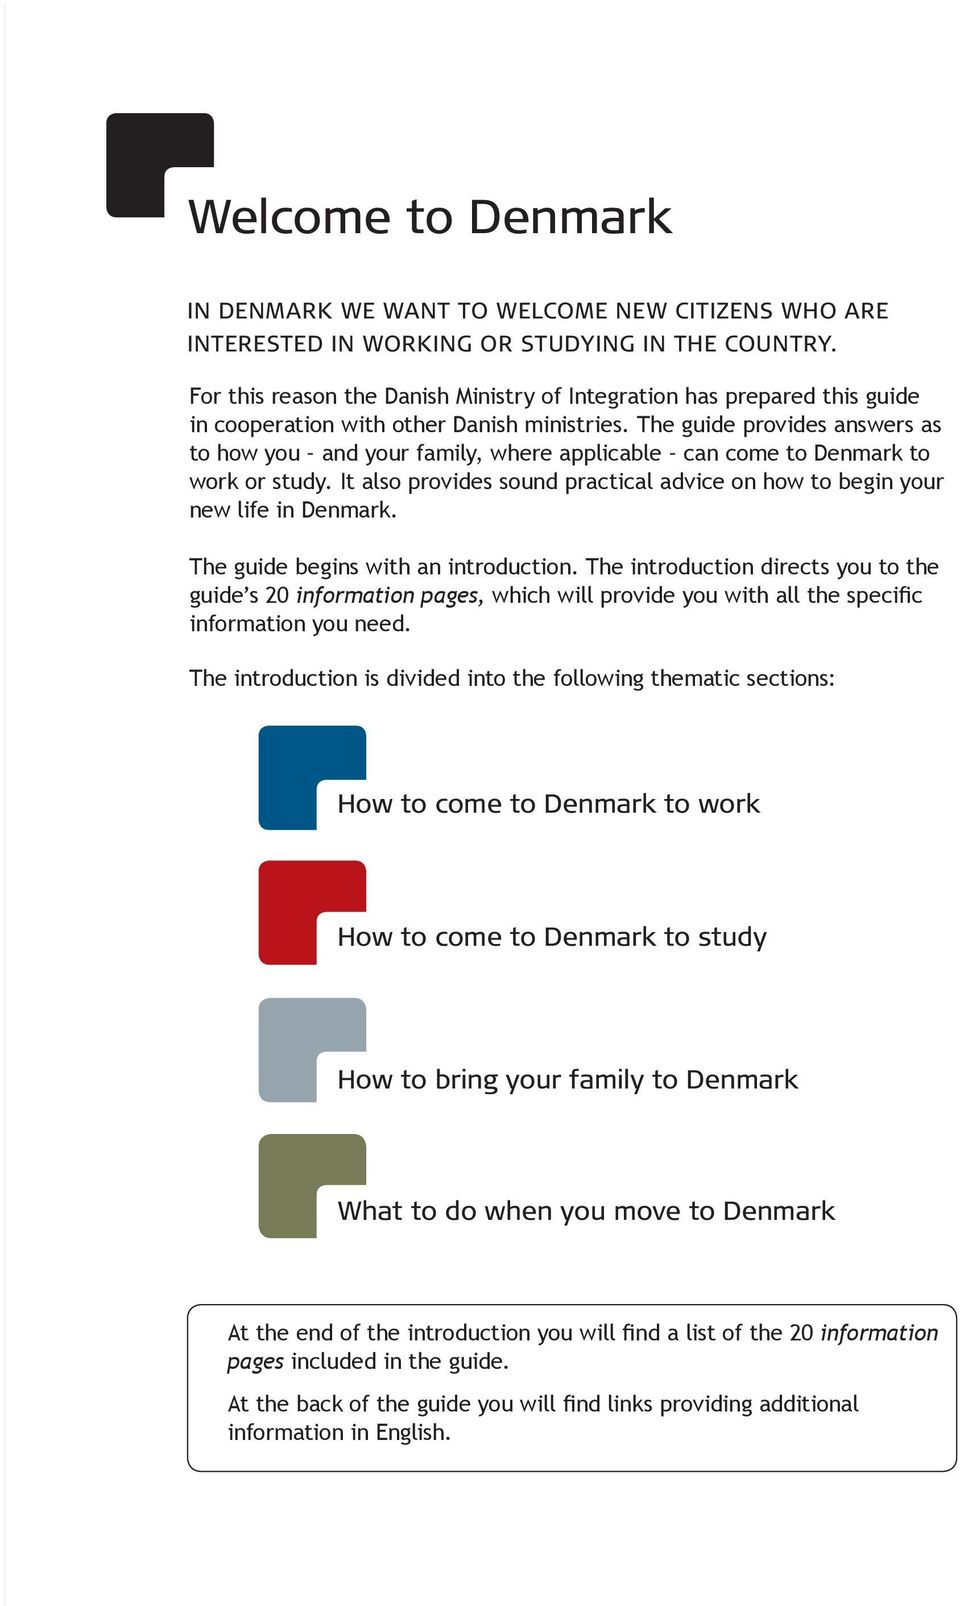 The guide provides answers as to how you and your family, where applicable can come to Denmark to work or study. It also provides sound practical advice on how to begin your new life in Denmark.